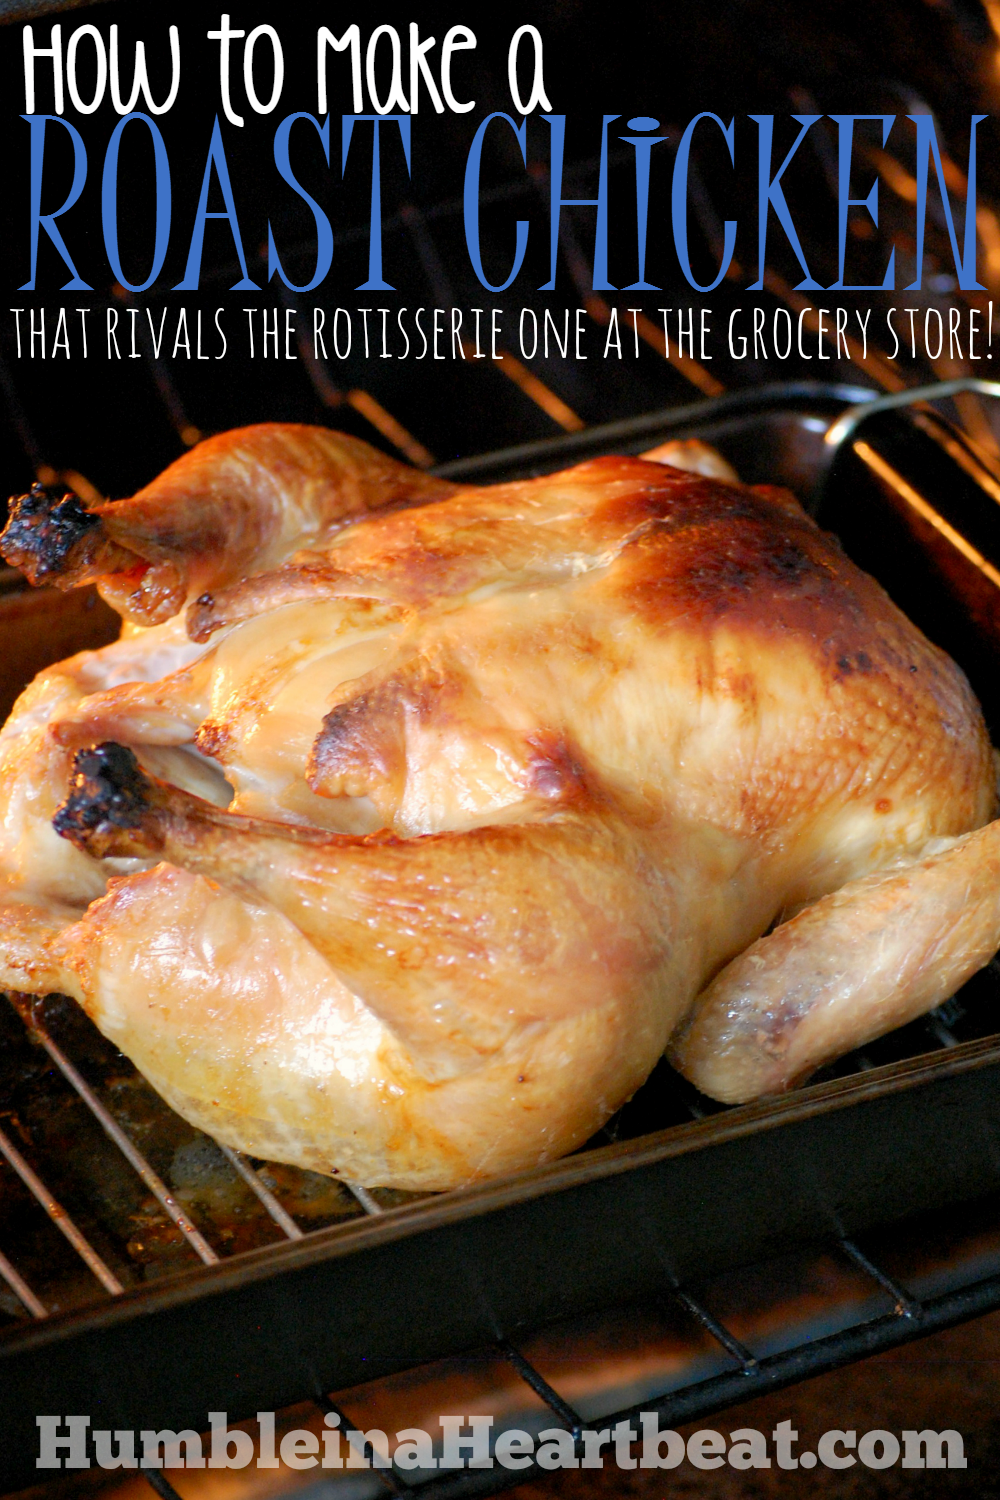 If you'd like to make a chicken at home that tastes just as good as (or better than) the rotisserie one at the grocery store, all you need is a couple ingredients and some extra time. It is worth every minute!